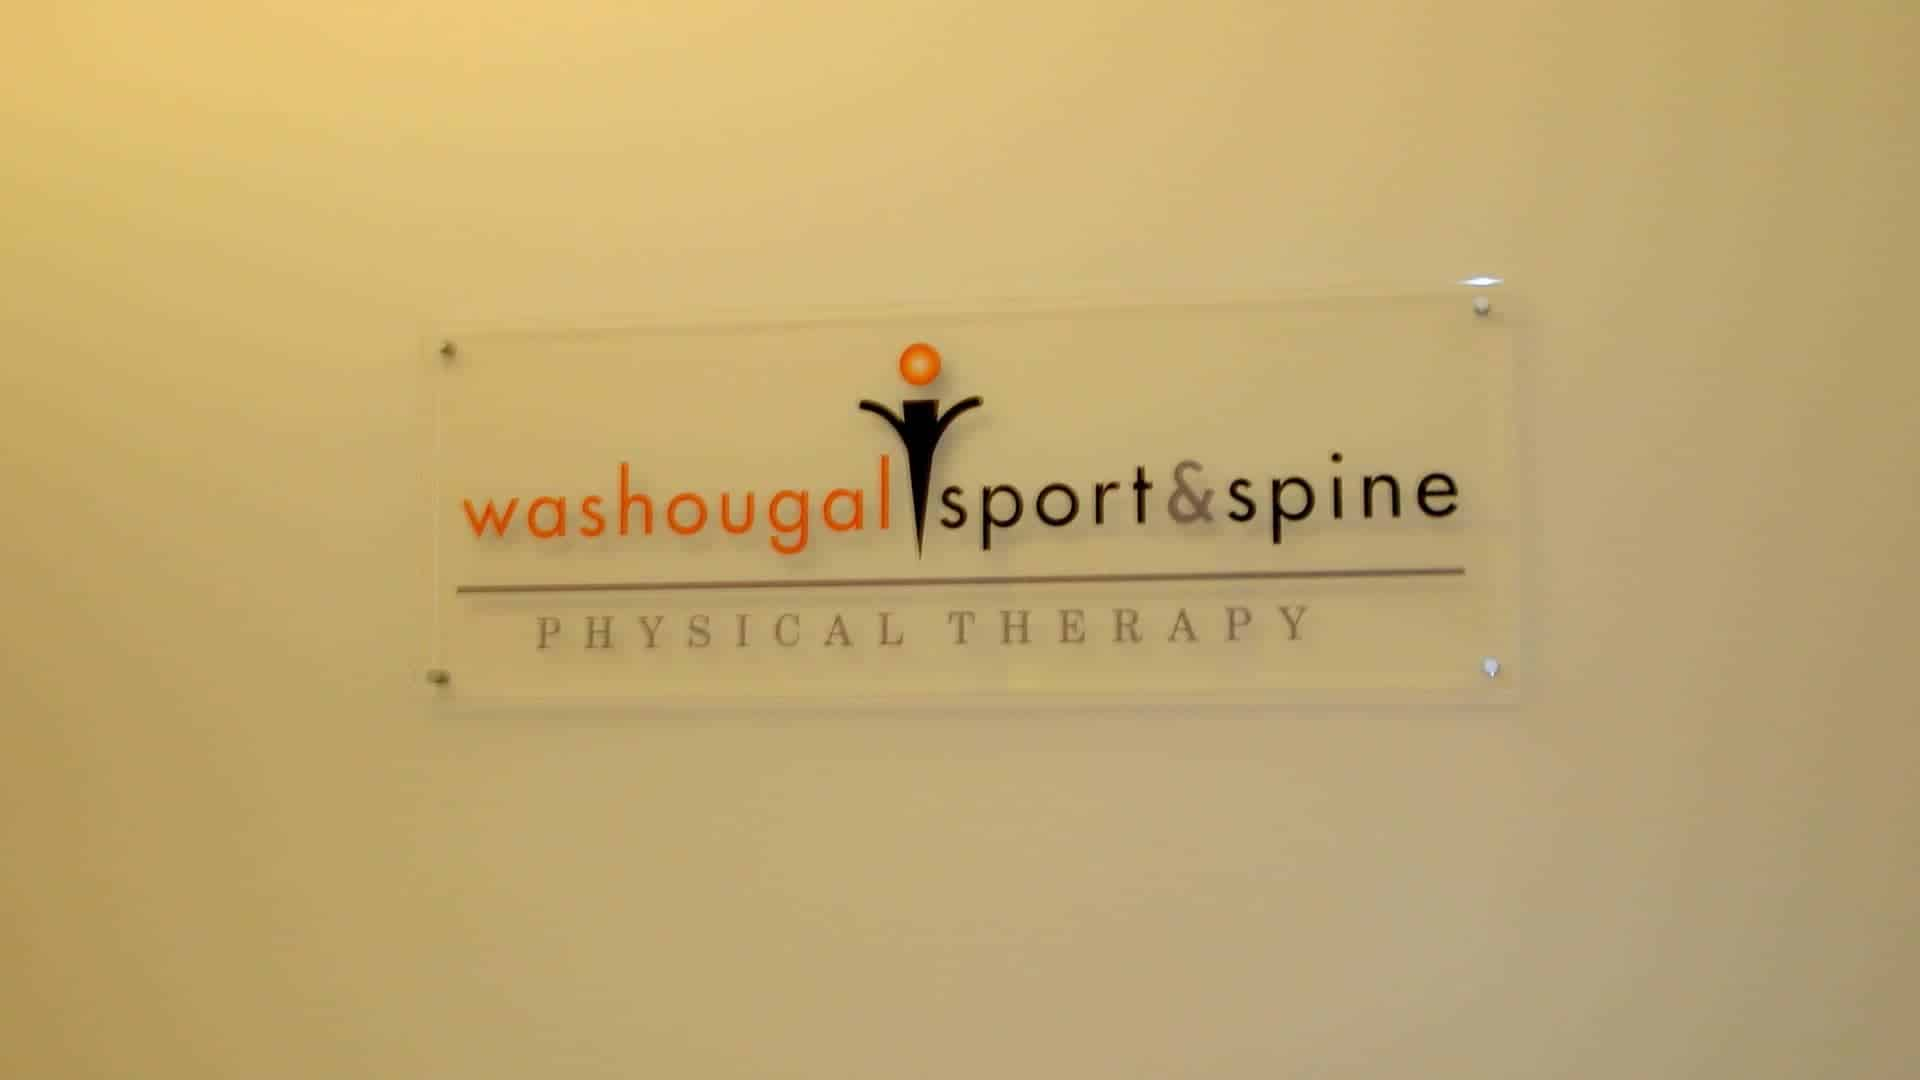 Washougal Sport & Spine LS-cropped3